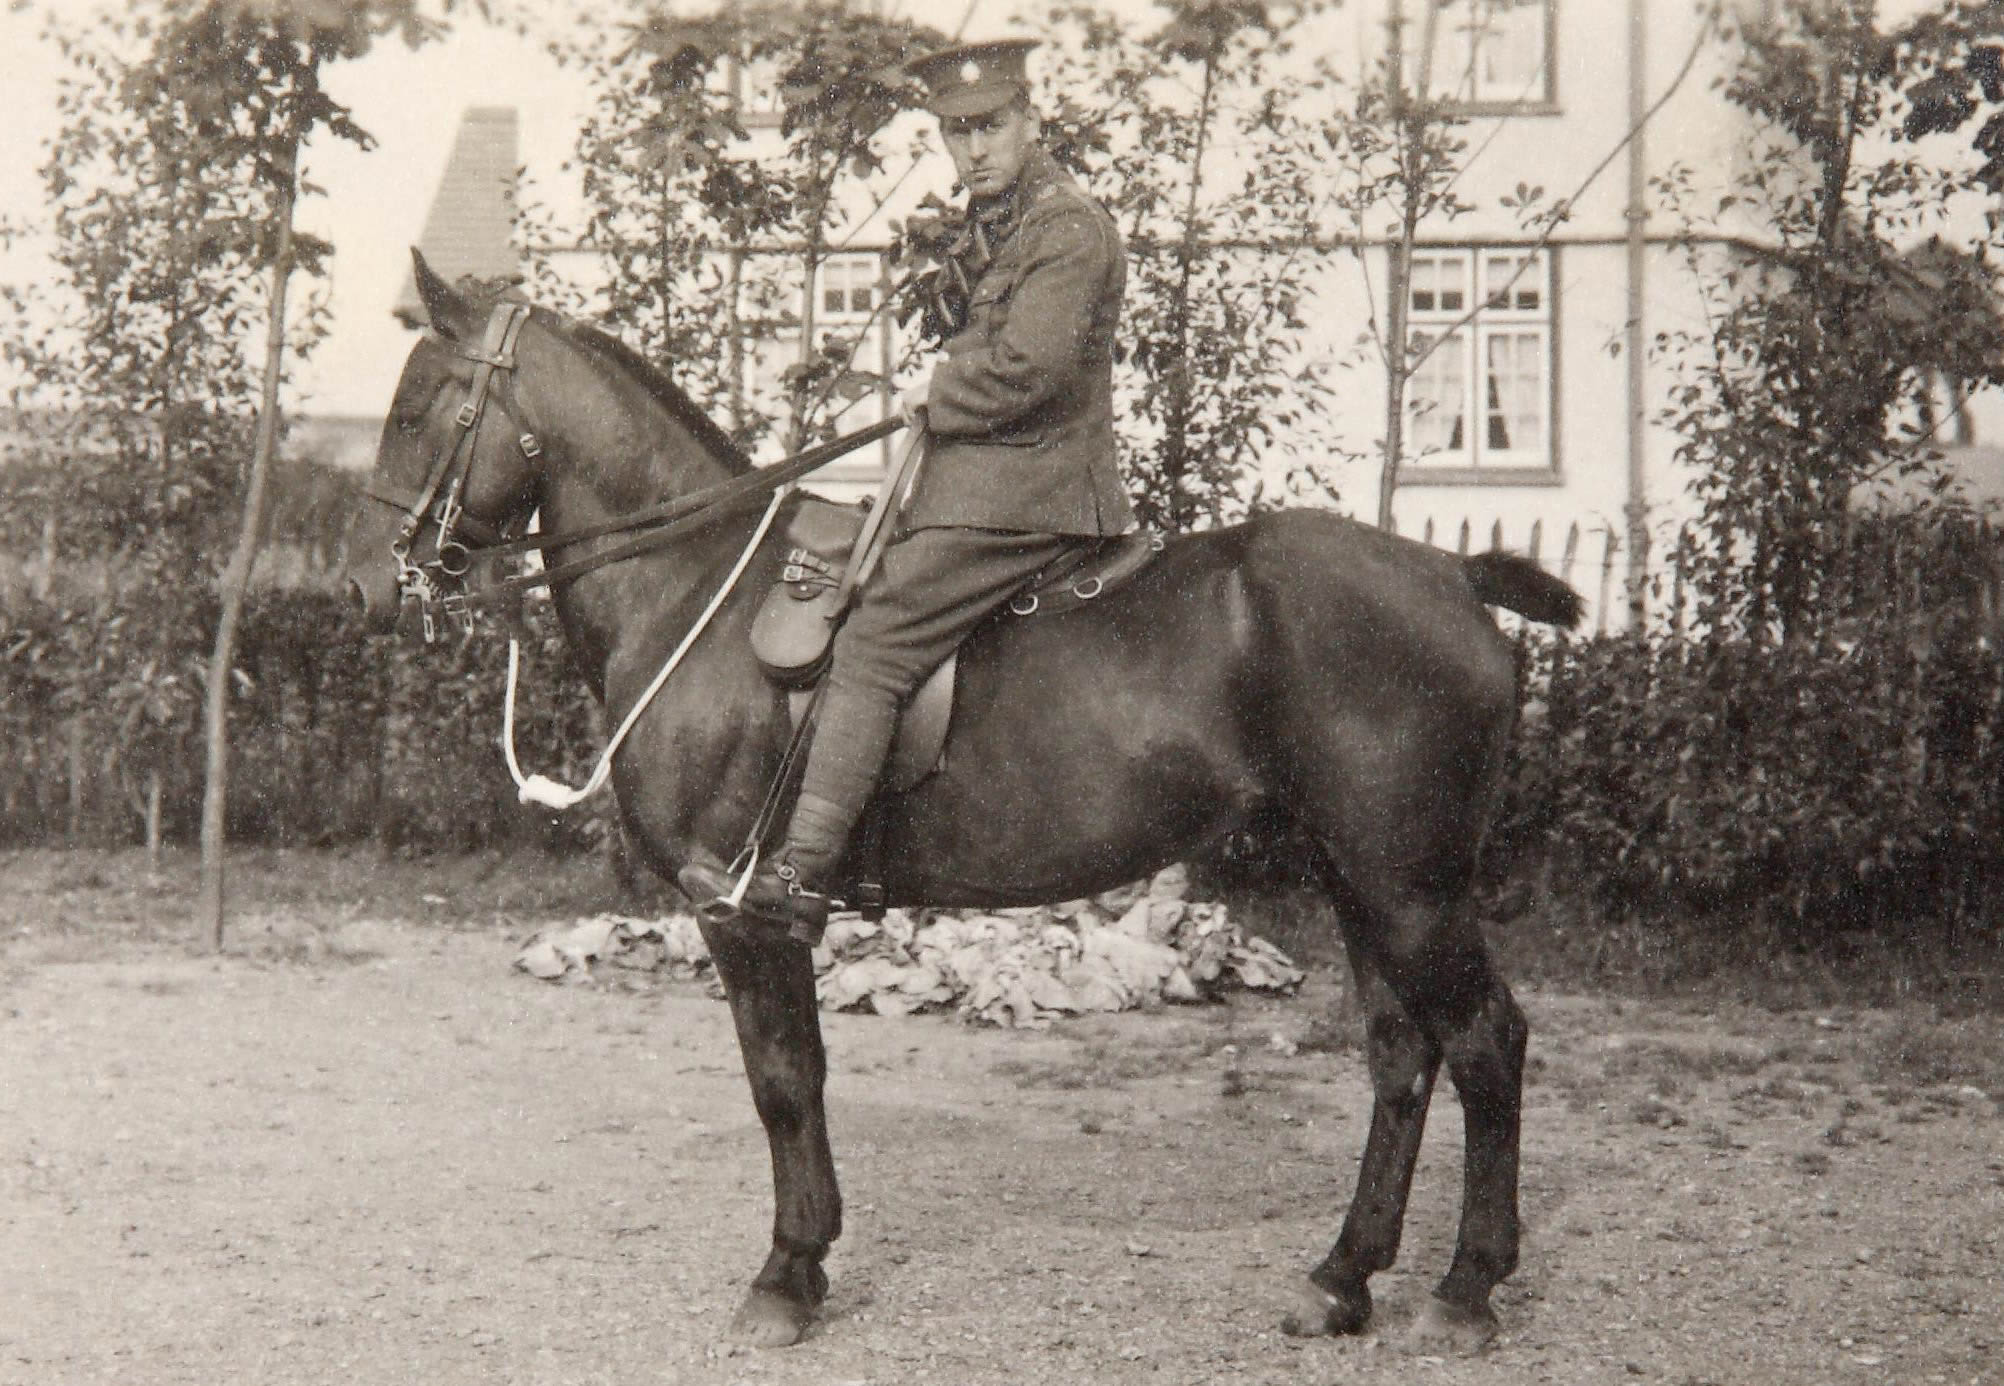 Image of a soldier on a horse